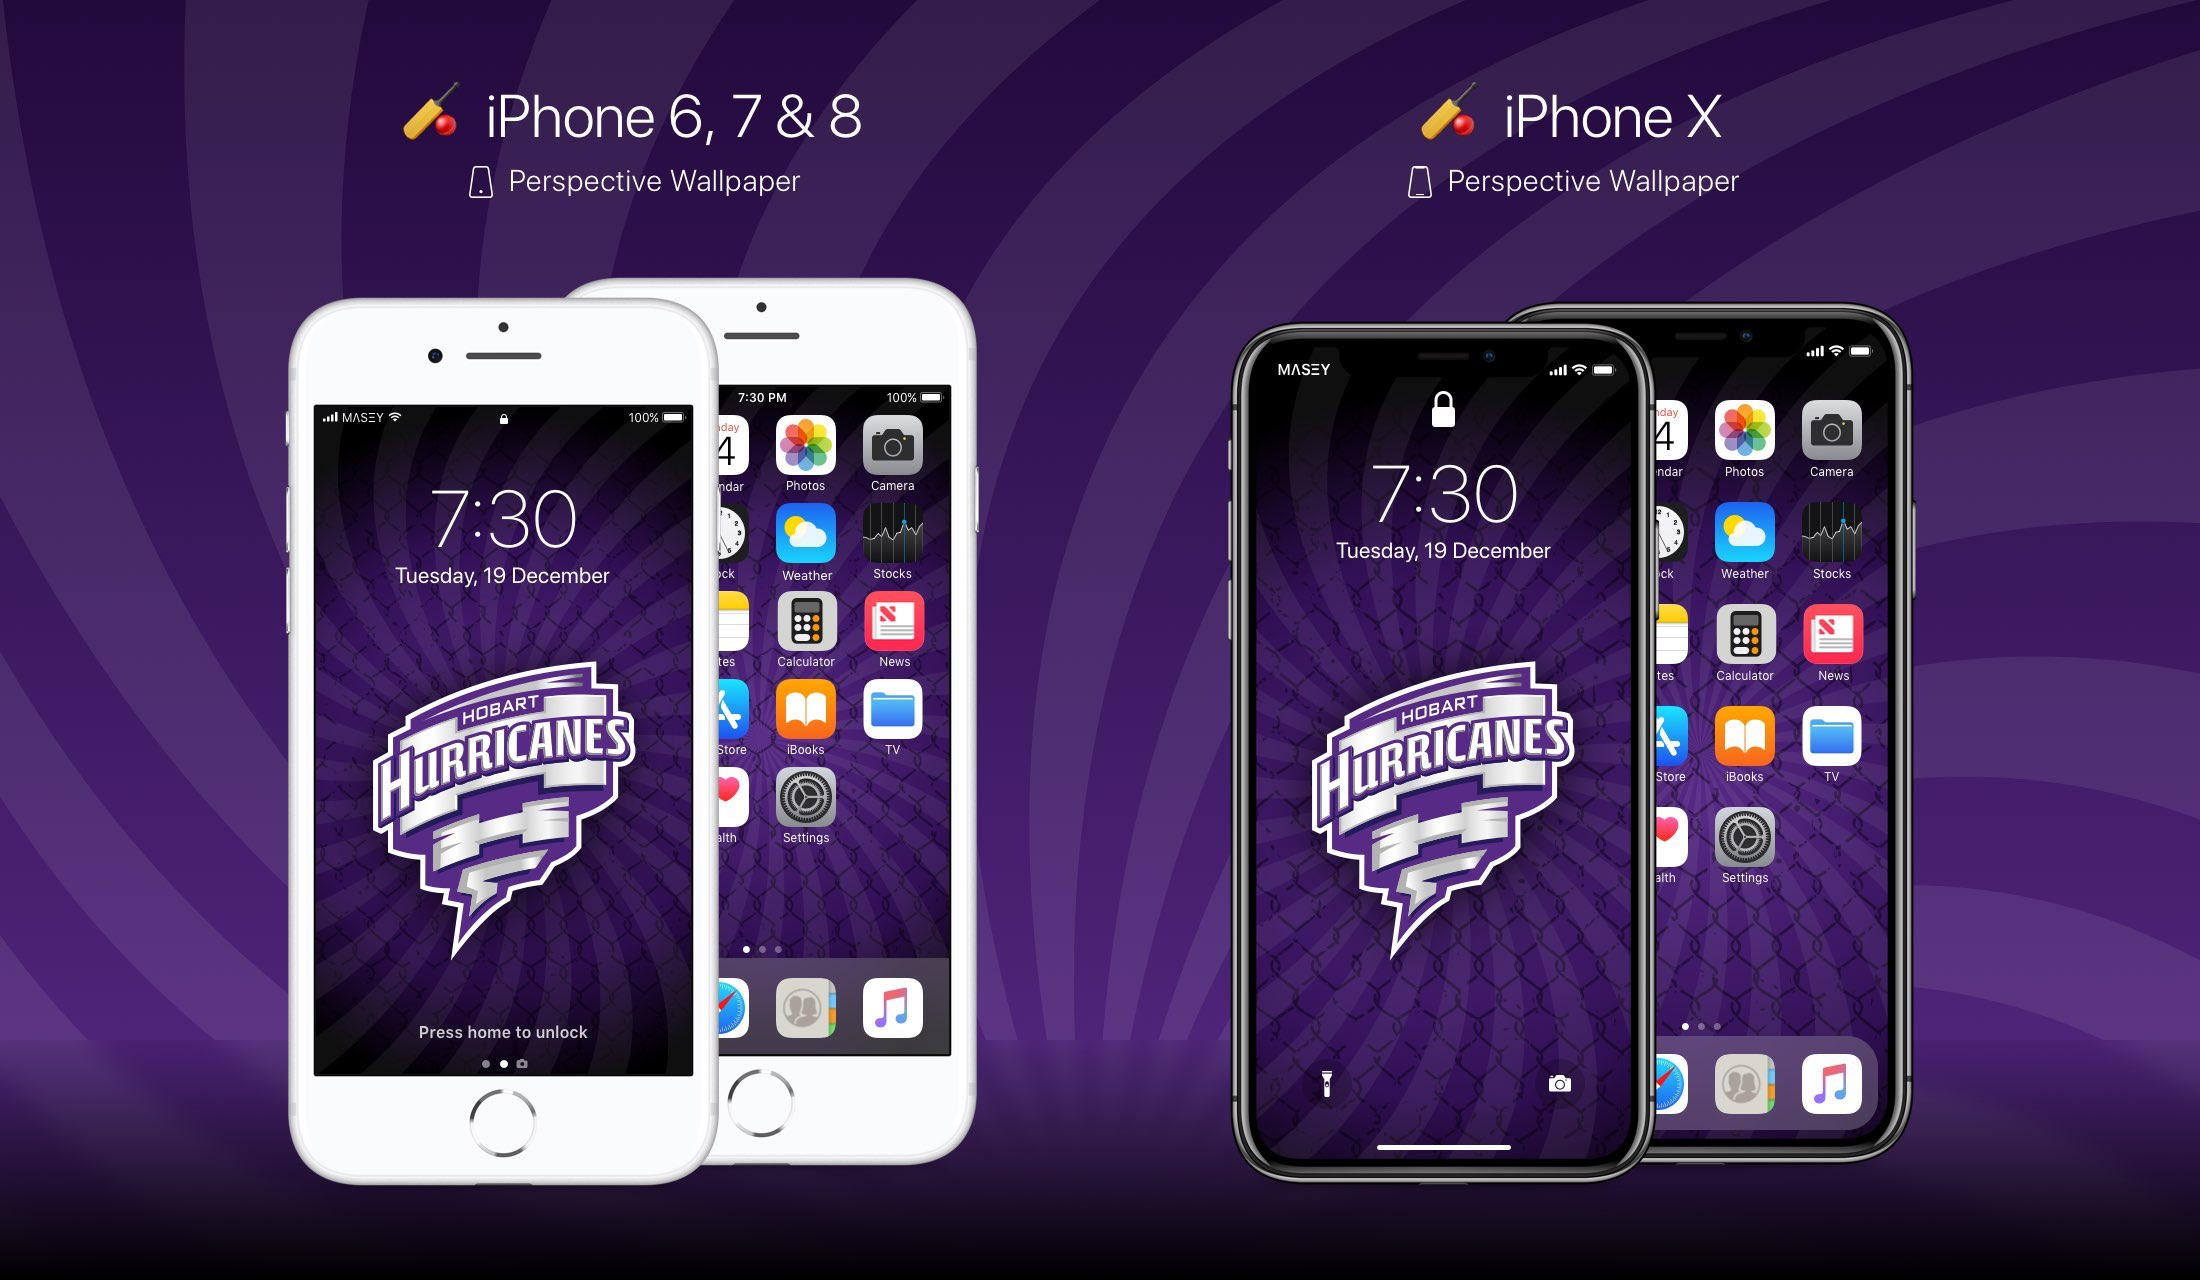 Hobart Hurricanes iPhone Wallpaper